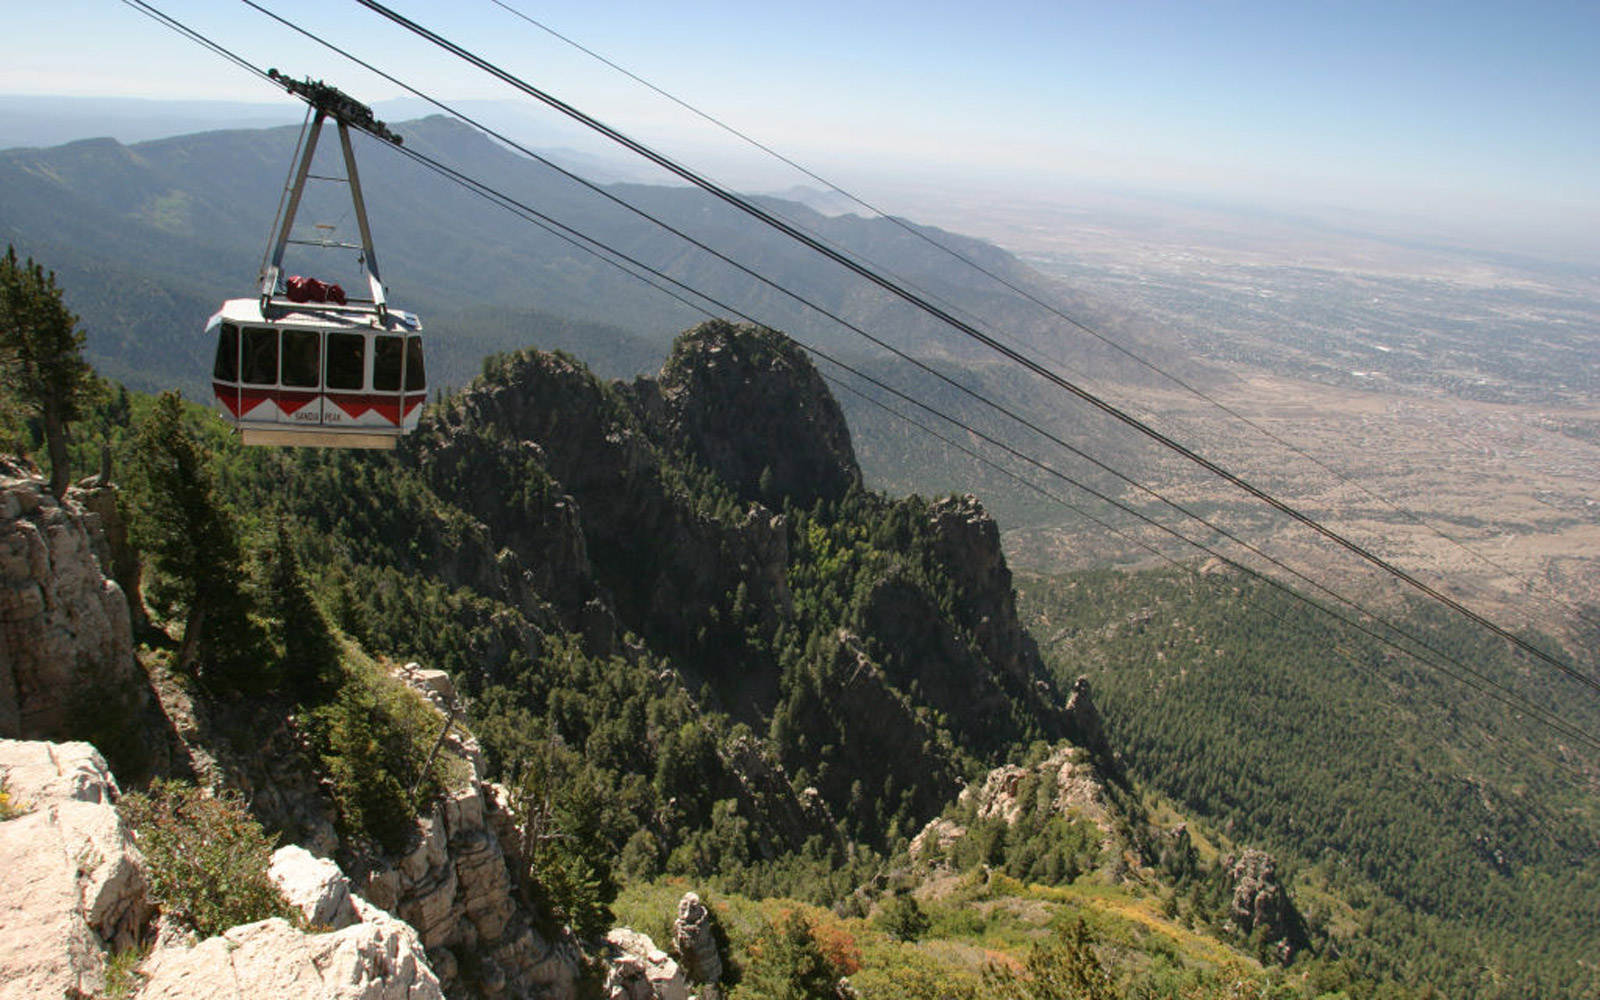 Sandia Peak Tramway. (Photo by: Jeffrey Greenberg/UIG via Getty Images)